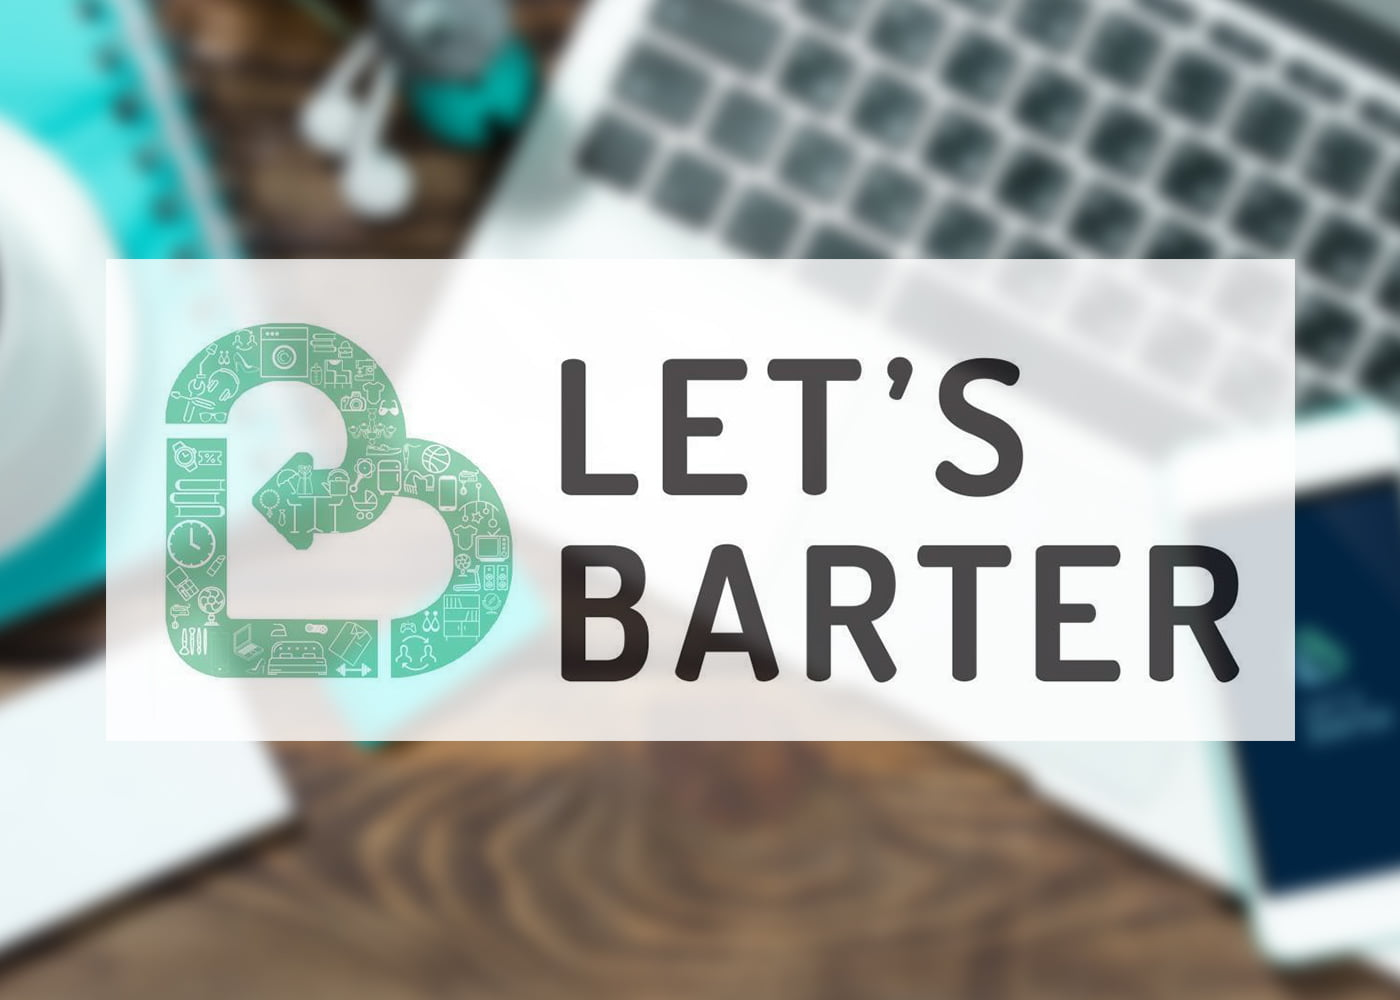 lets barter india successful business